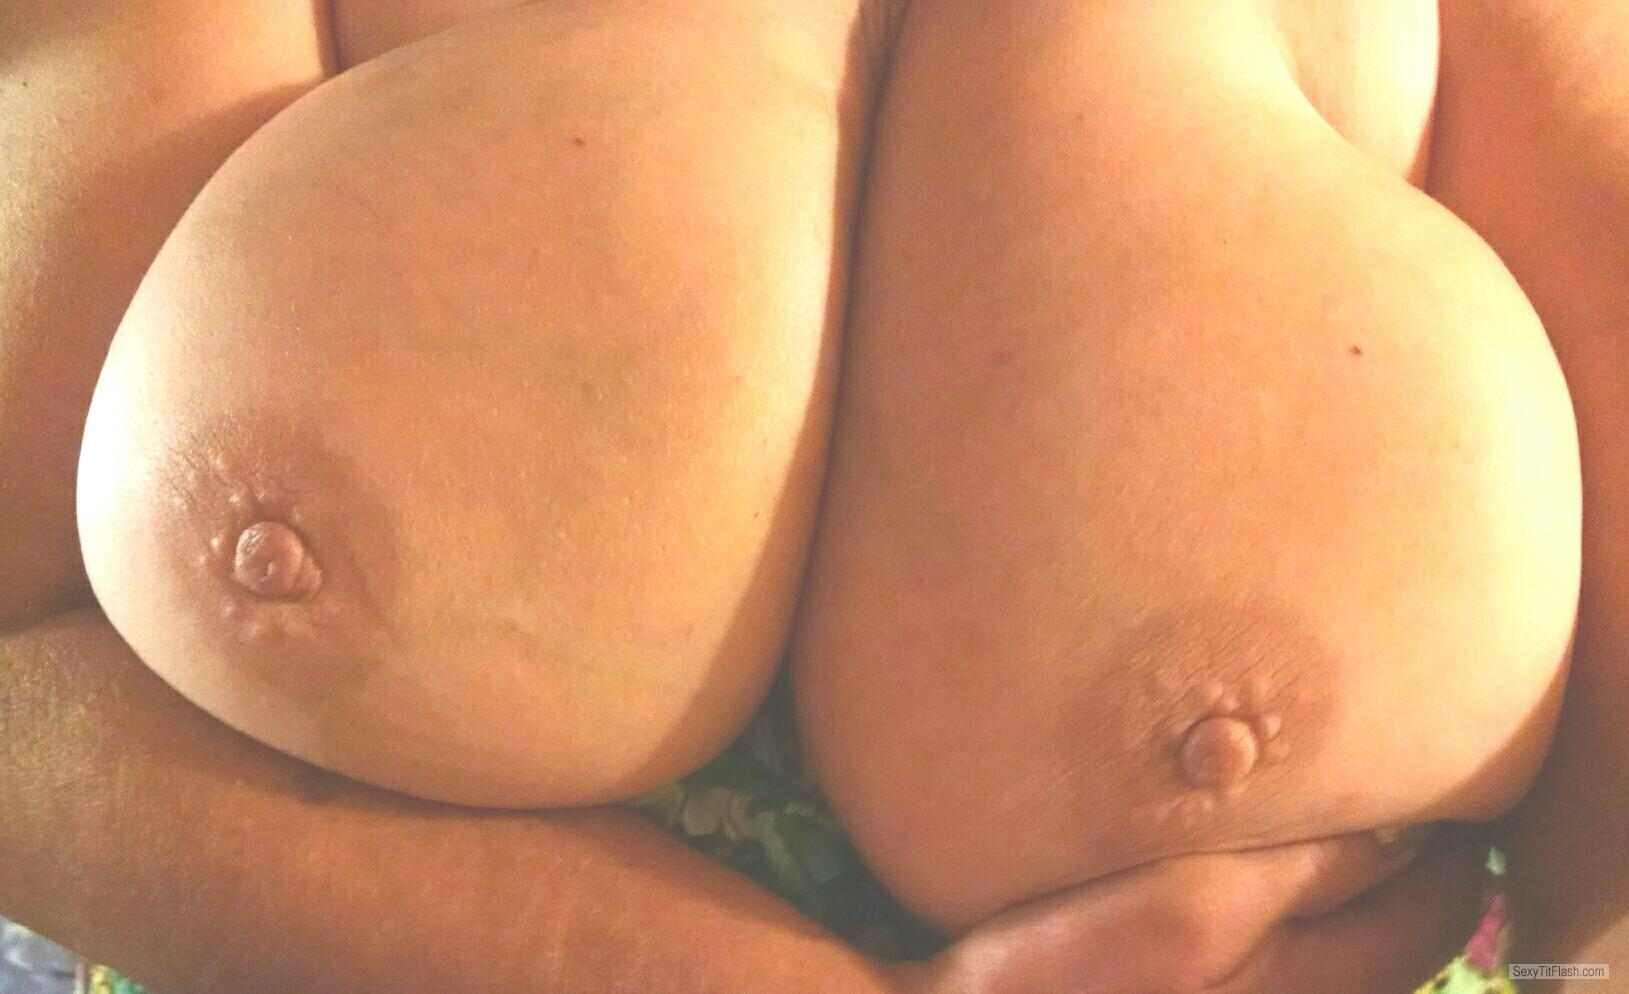 Tit Flash: Wife's Very Big Tits - Buns from United States